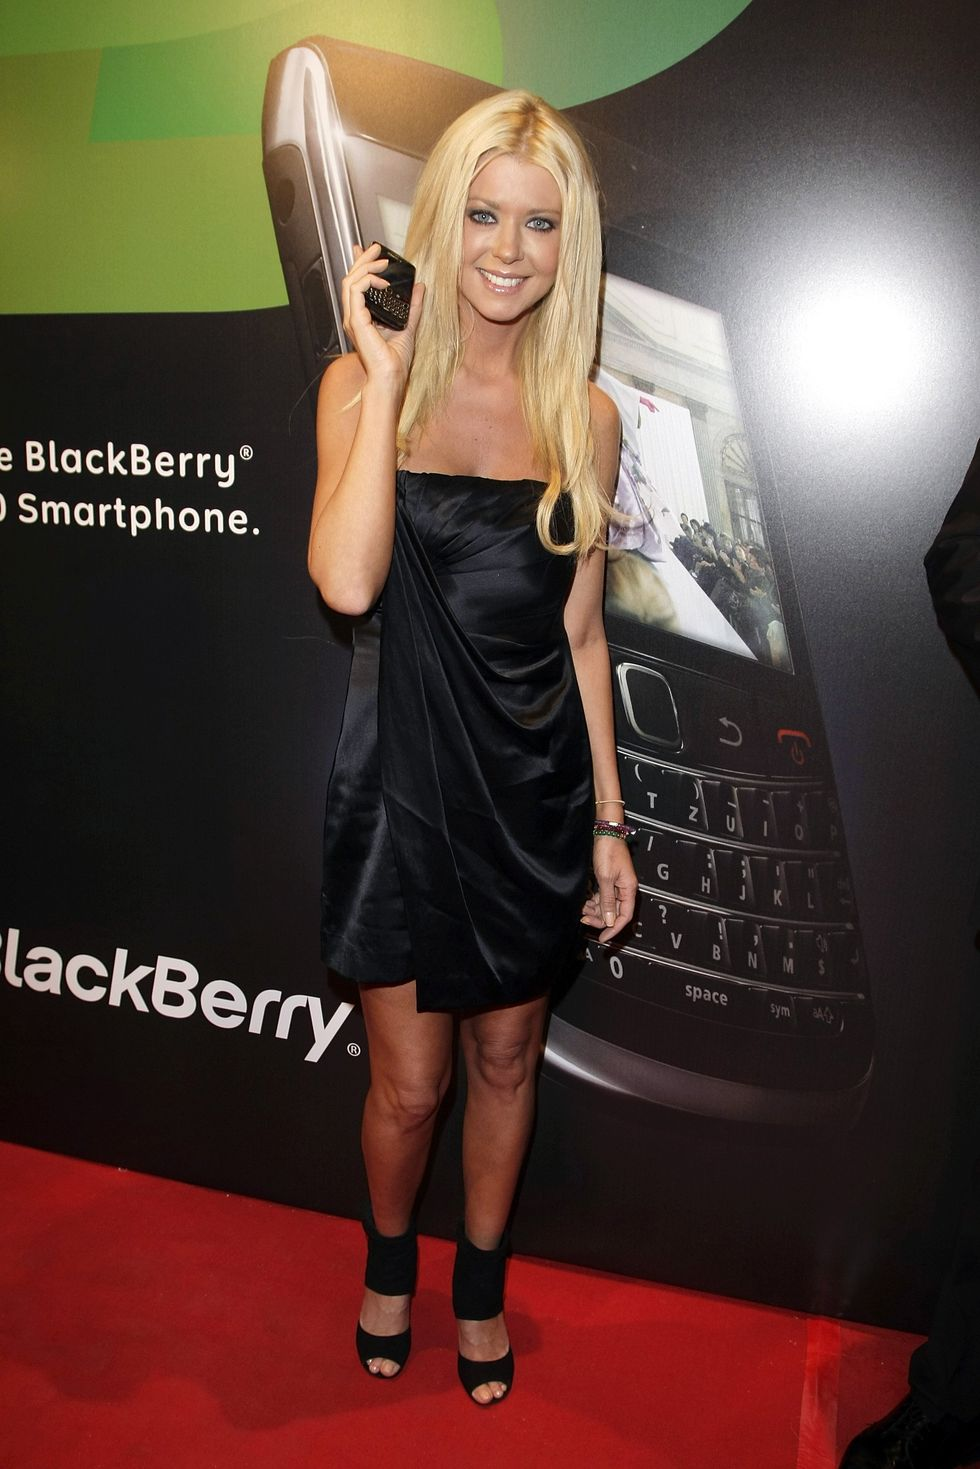 tara-reid-blackberry-bold-presentation-in-cologne-01